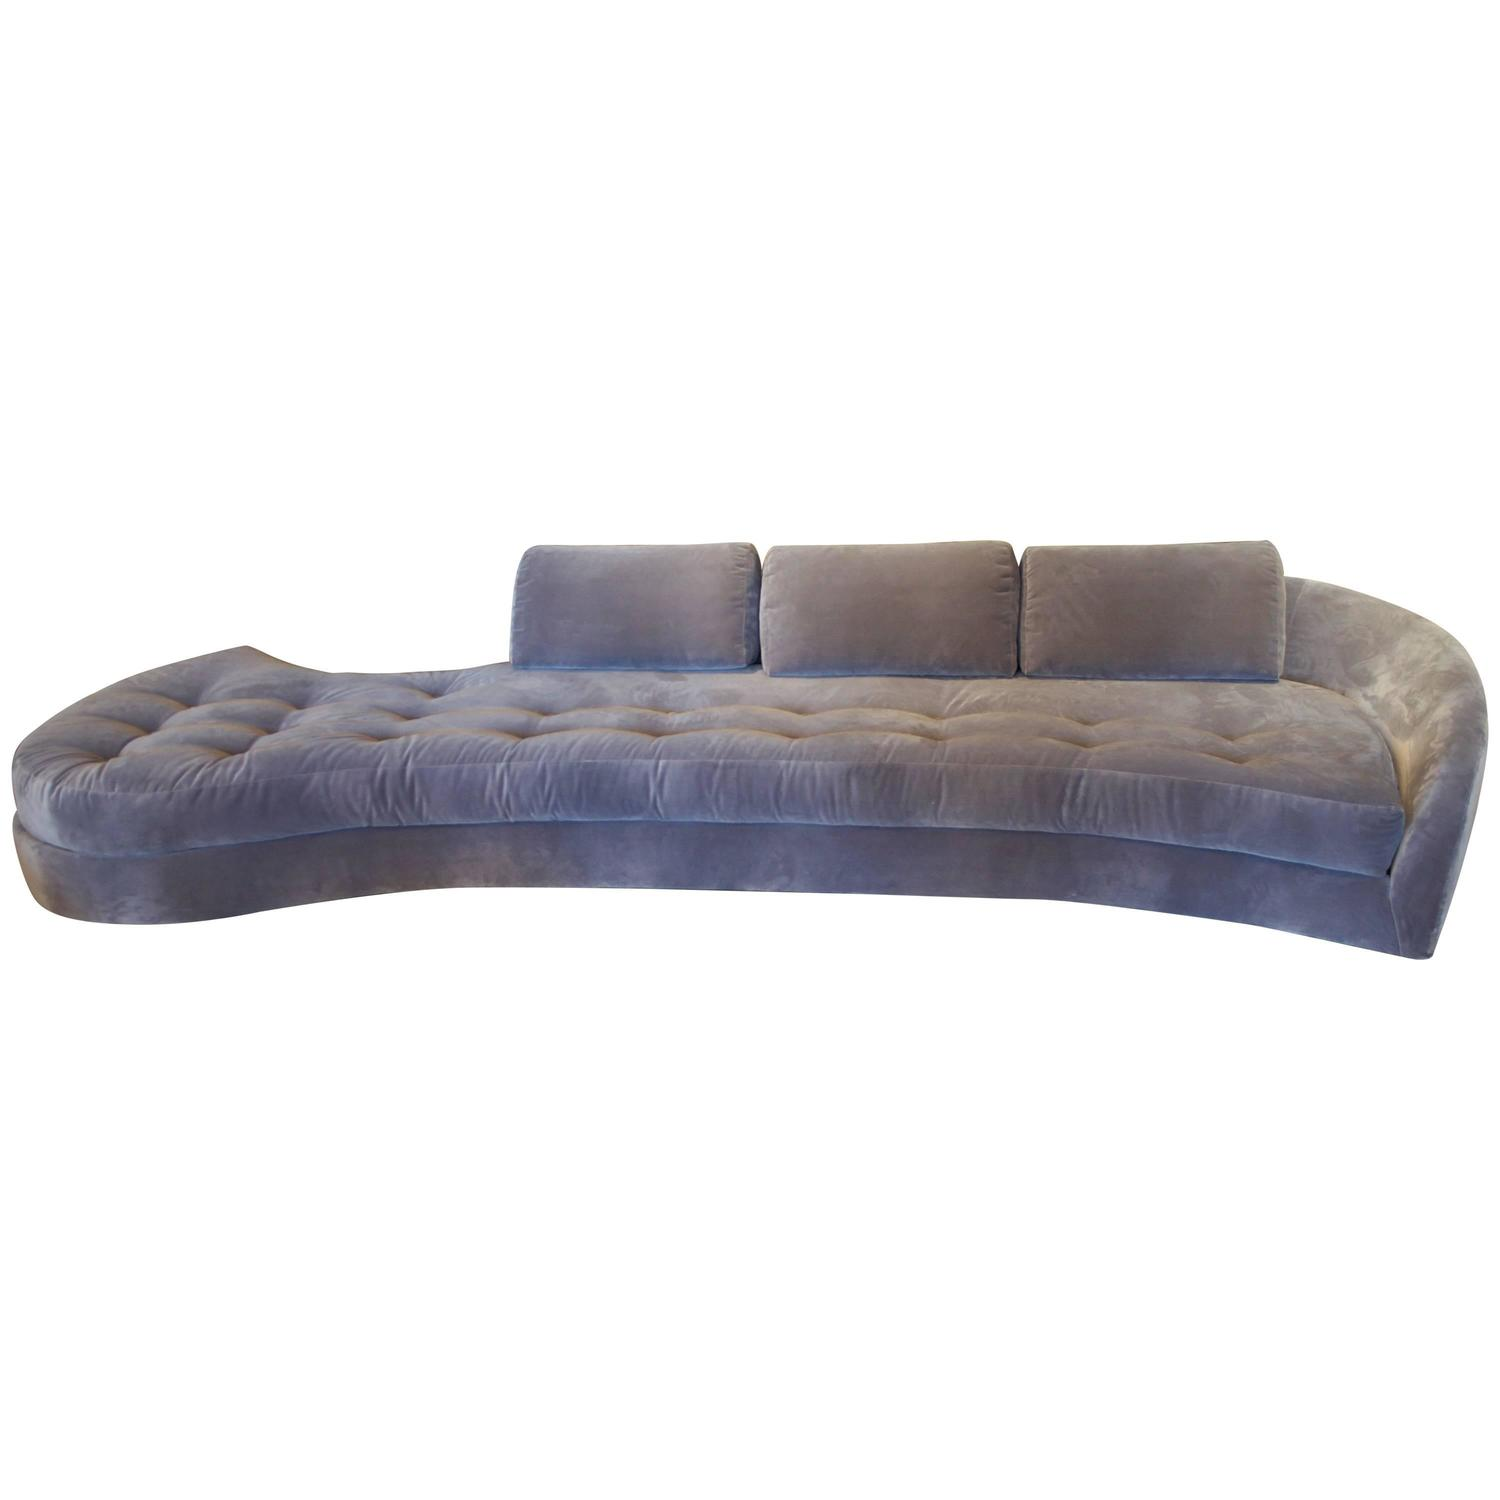 1950s long sofa for sale at 1stdibs for Long couches for sale